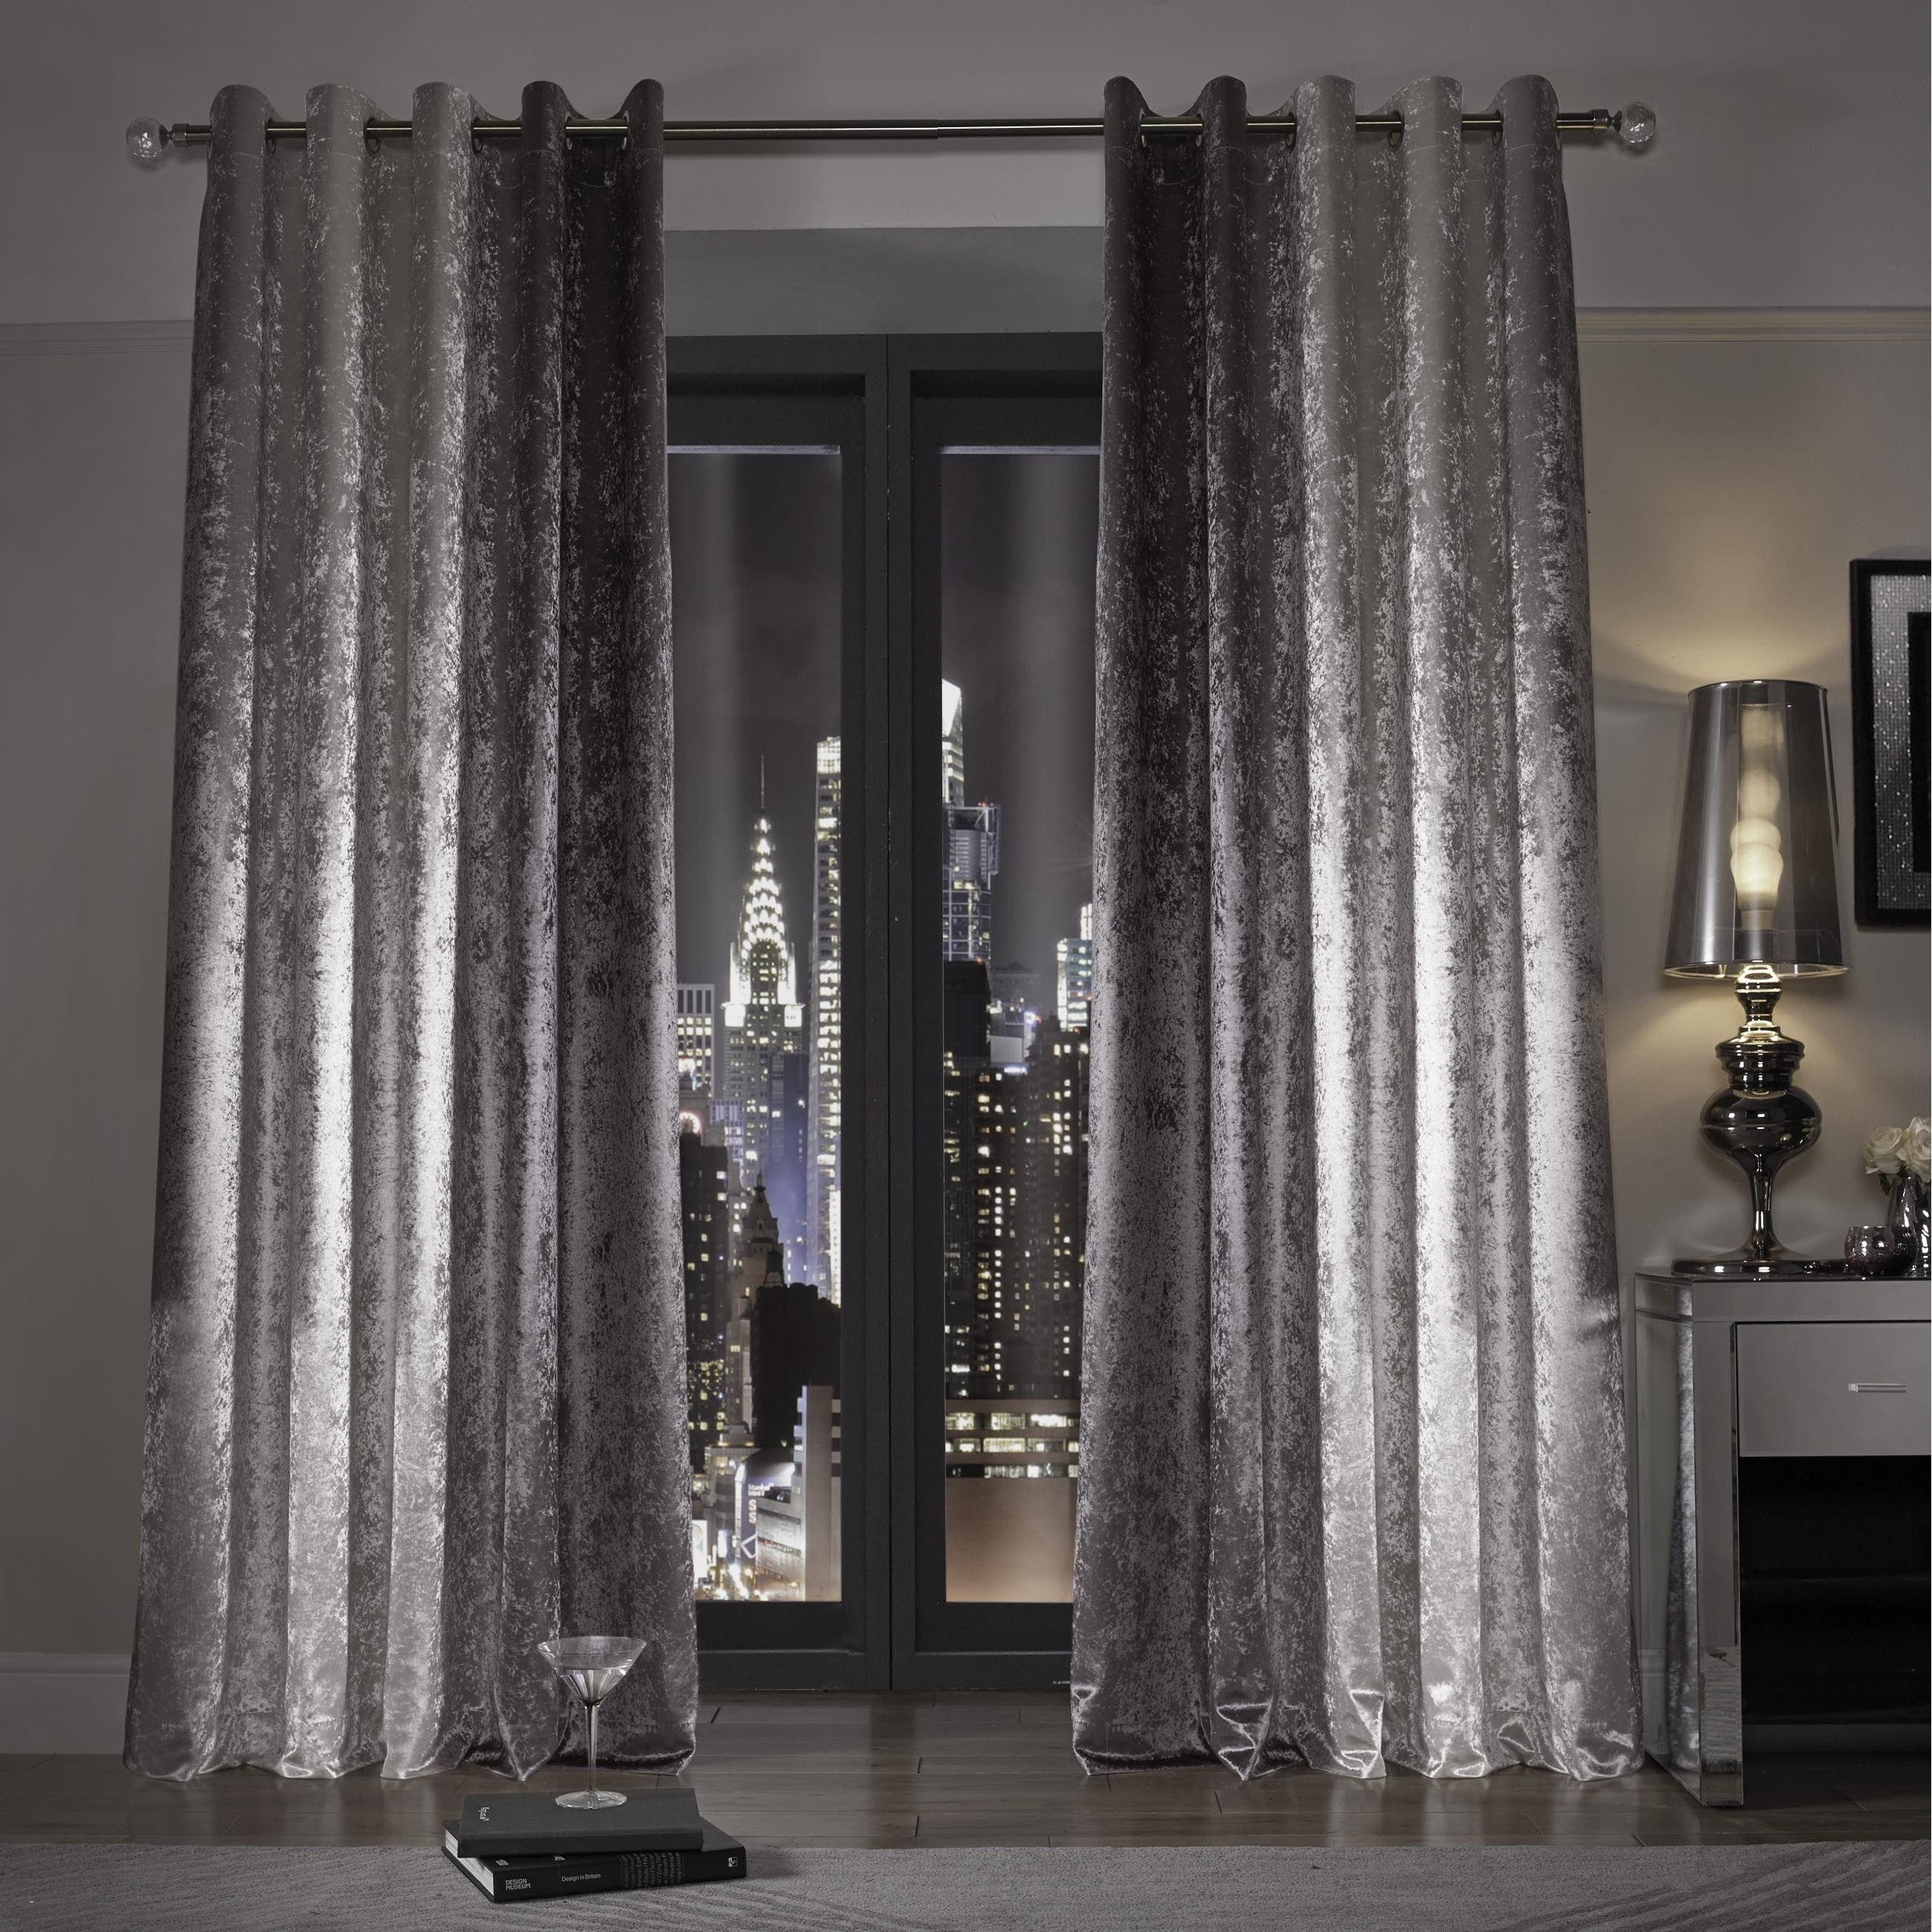 Pretty Curtains for Bedroom Fresh 21 Amazing Window Sill Vases